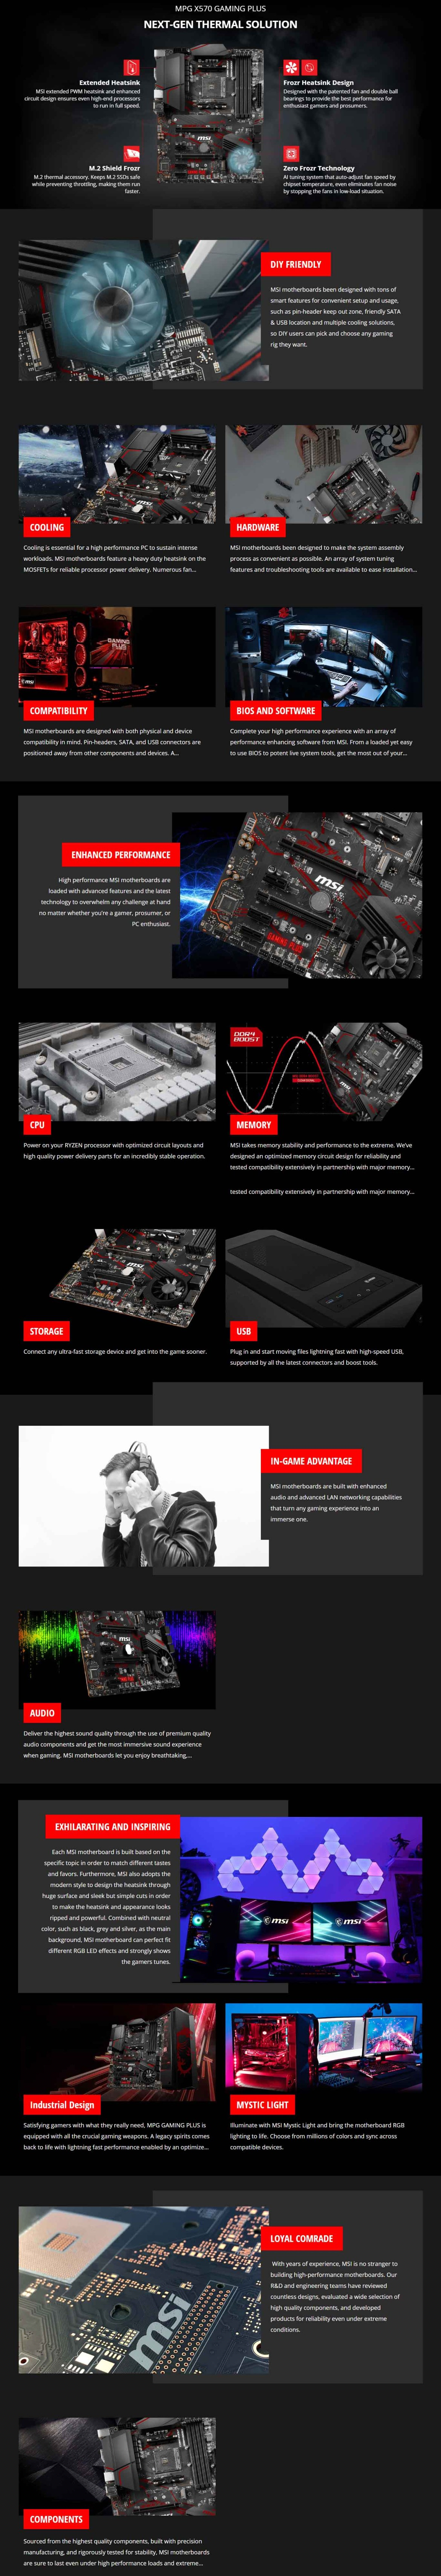 MSI-MPG-X570-Gaming-Plus-Motherboard-Details-Eitimad